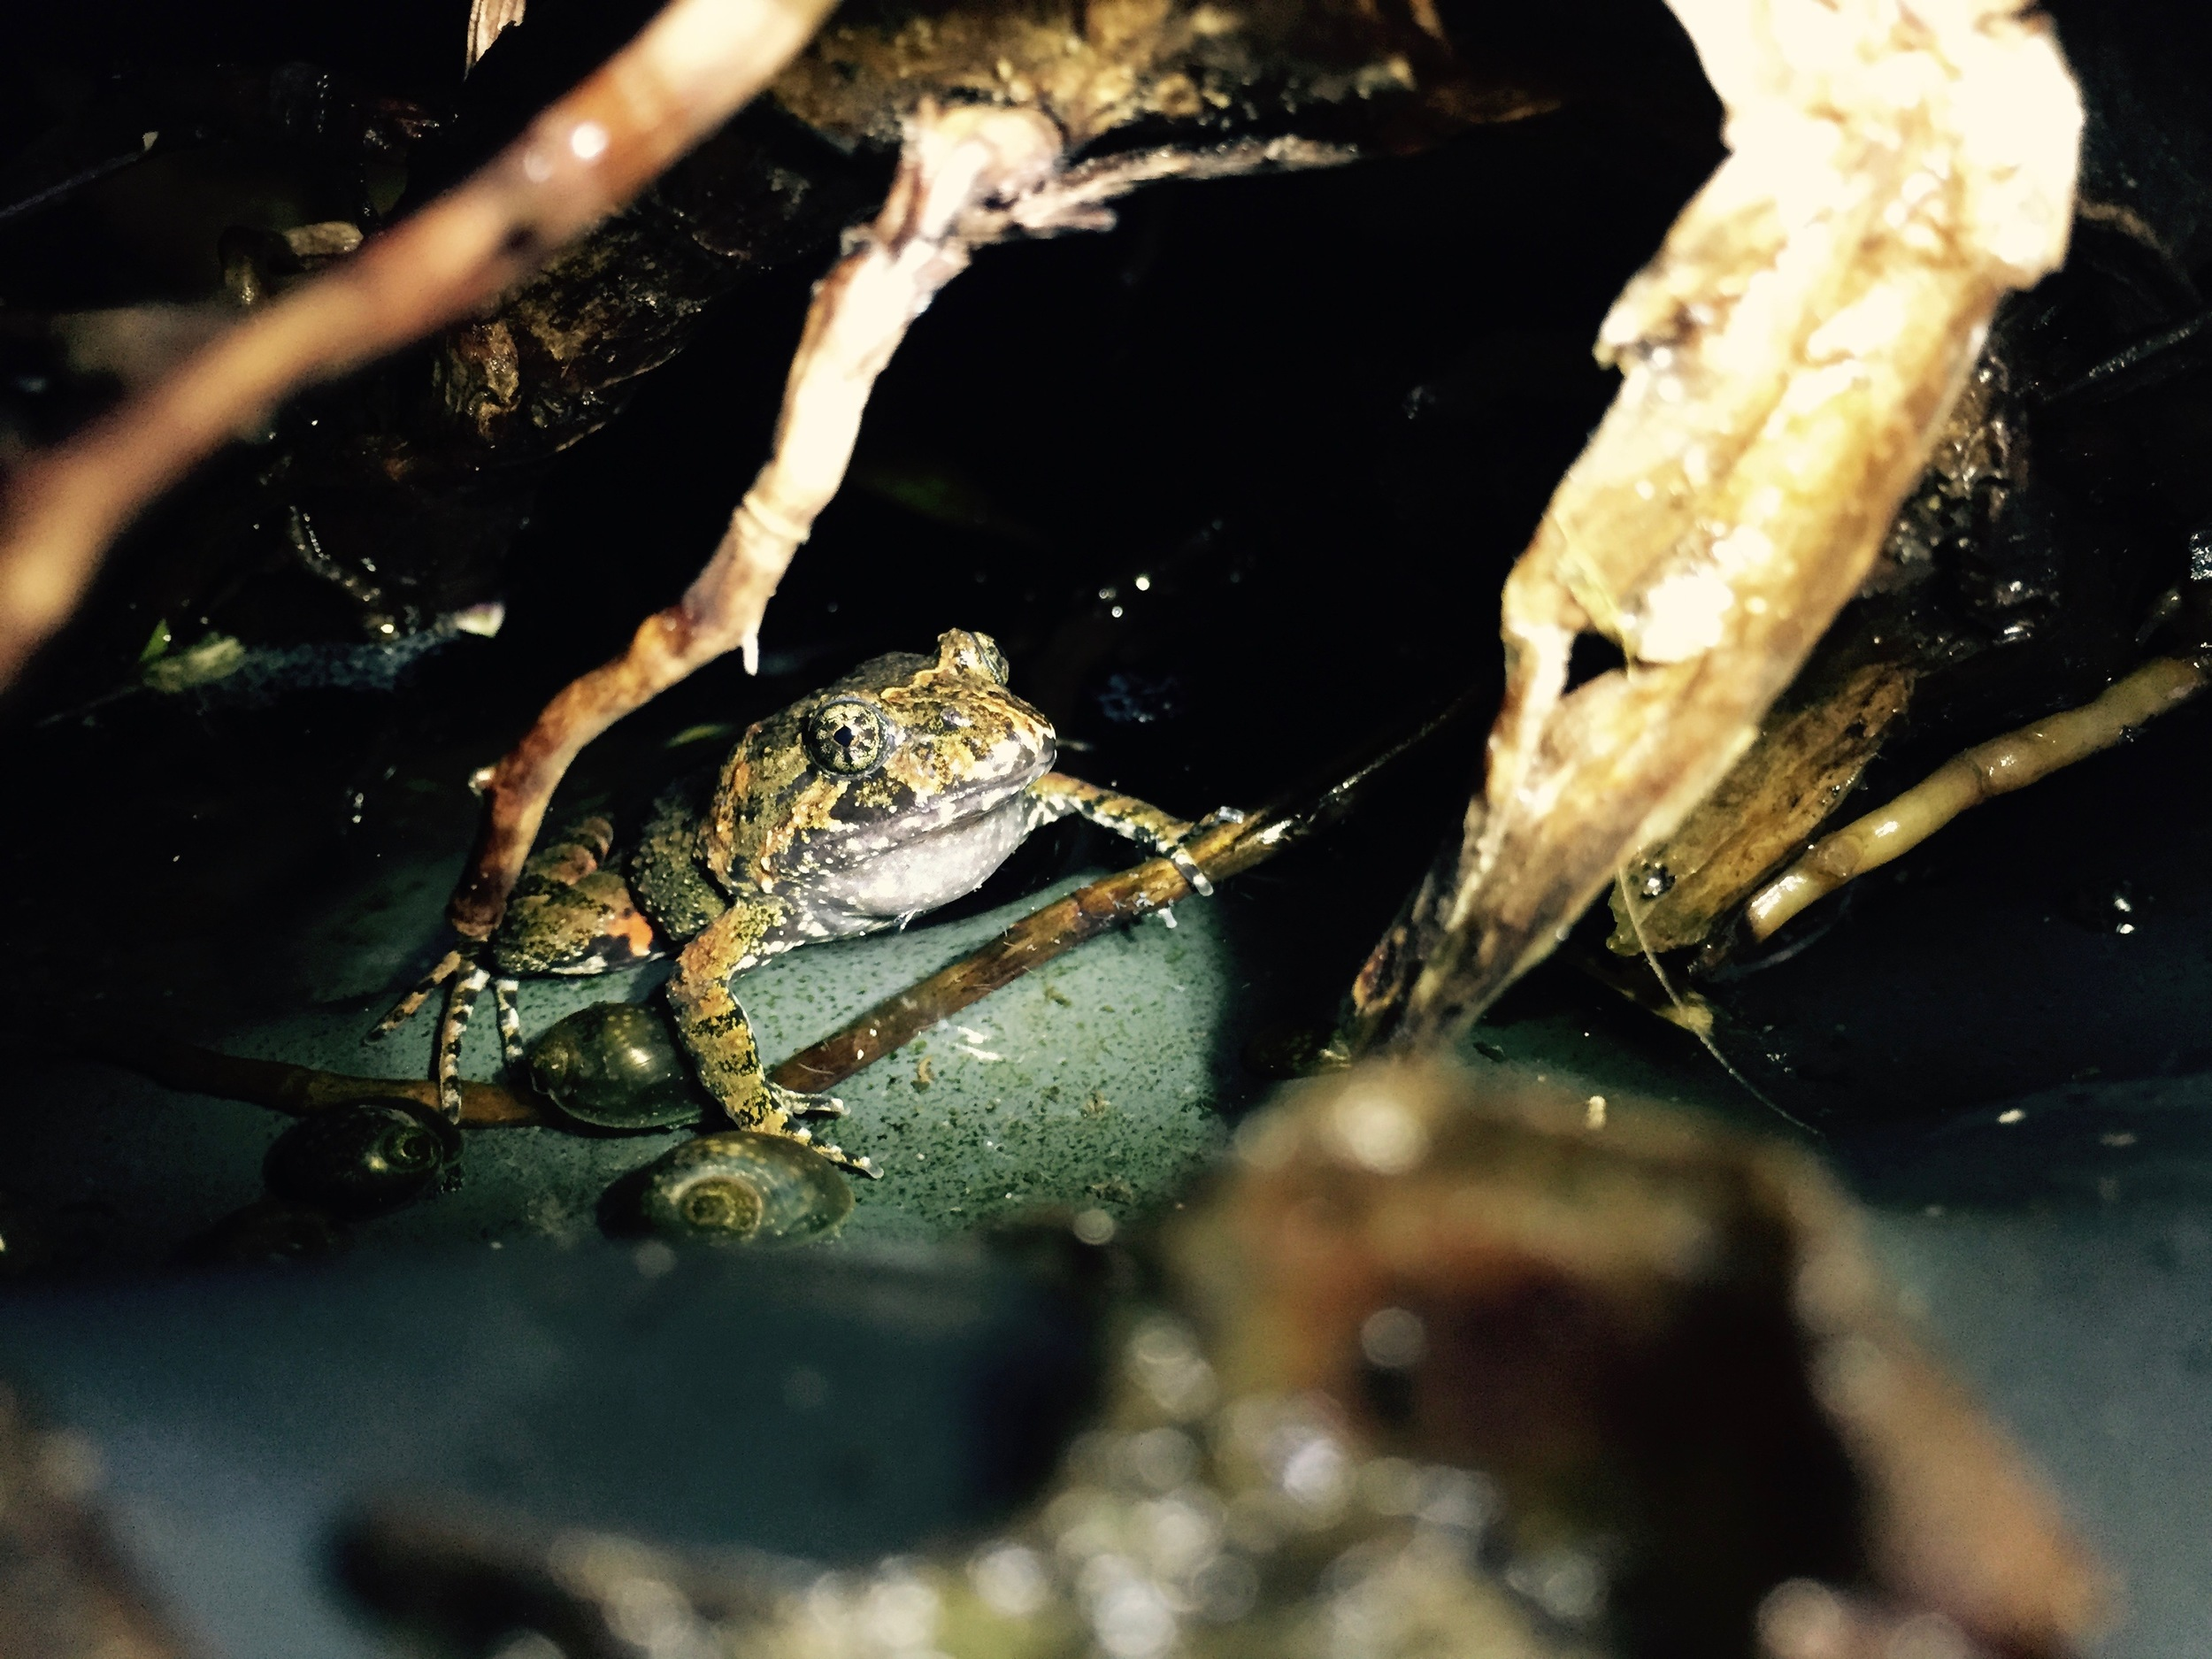 Here's the male tusked frog with that dear-in-the-headlights look. He's waiting patiently for the humans to go away so he can resume calling to attract the female. The humans are waiting patiently with their light on the frog so that they can get a picture of him calling. There are many pictures (and videos) like this one.